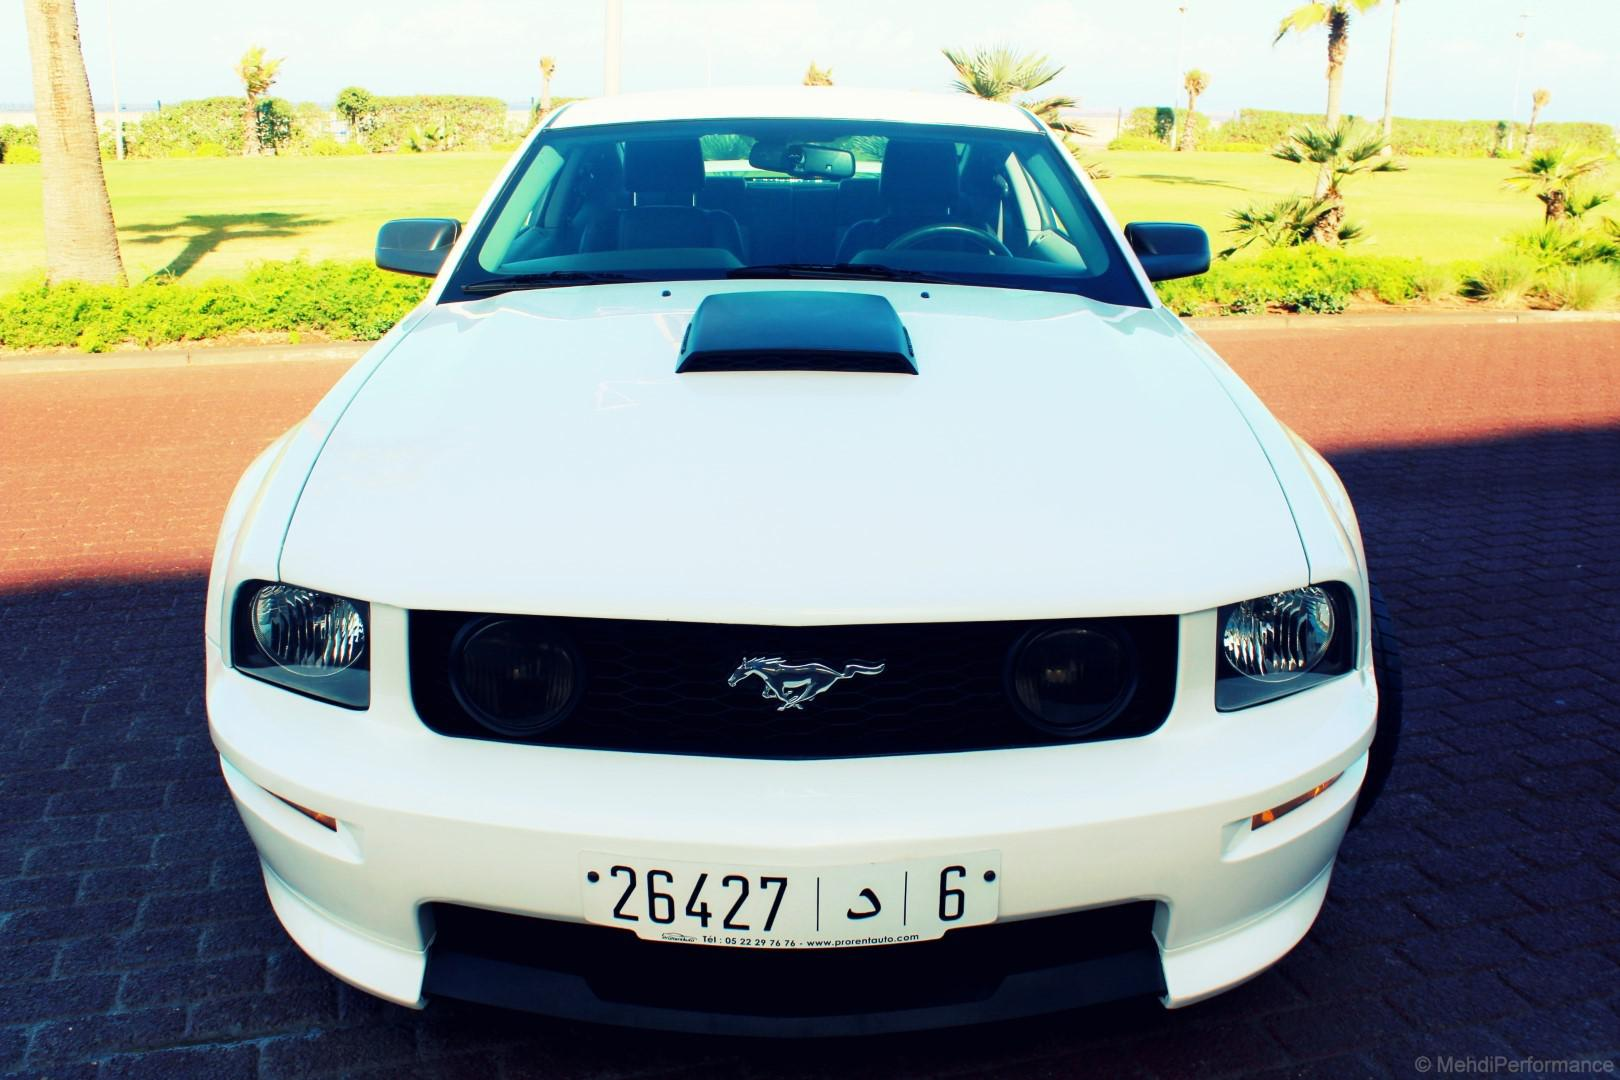 serie-speciale-au-maroc-ford-mustang-gt-v8-4-6l-california-special-manuelle-458-1.jpg